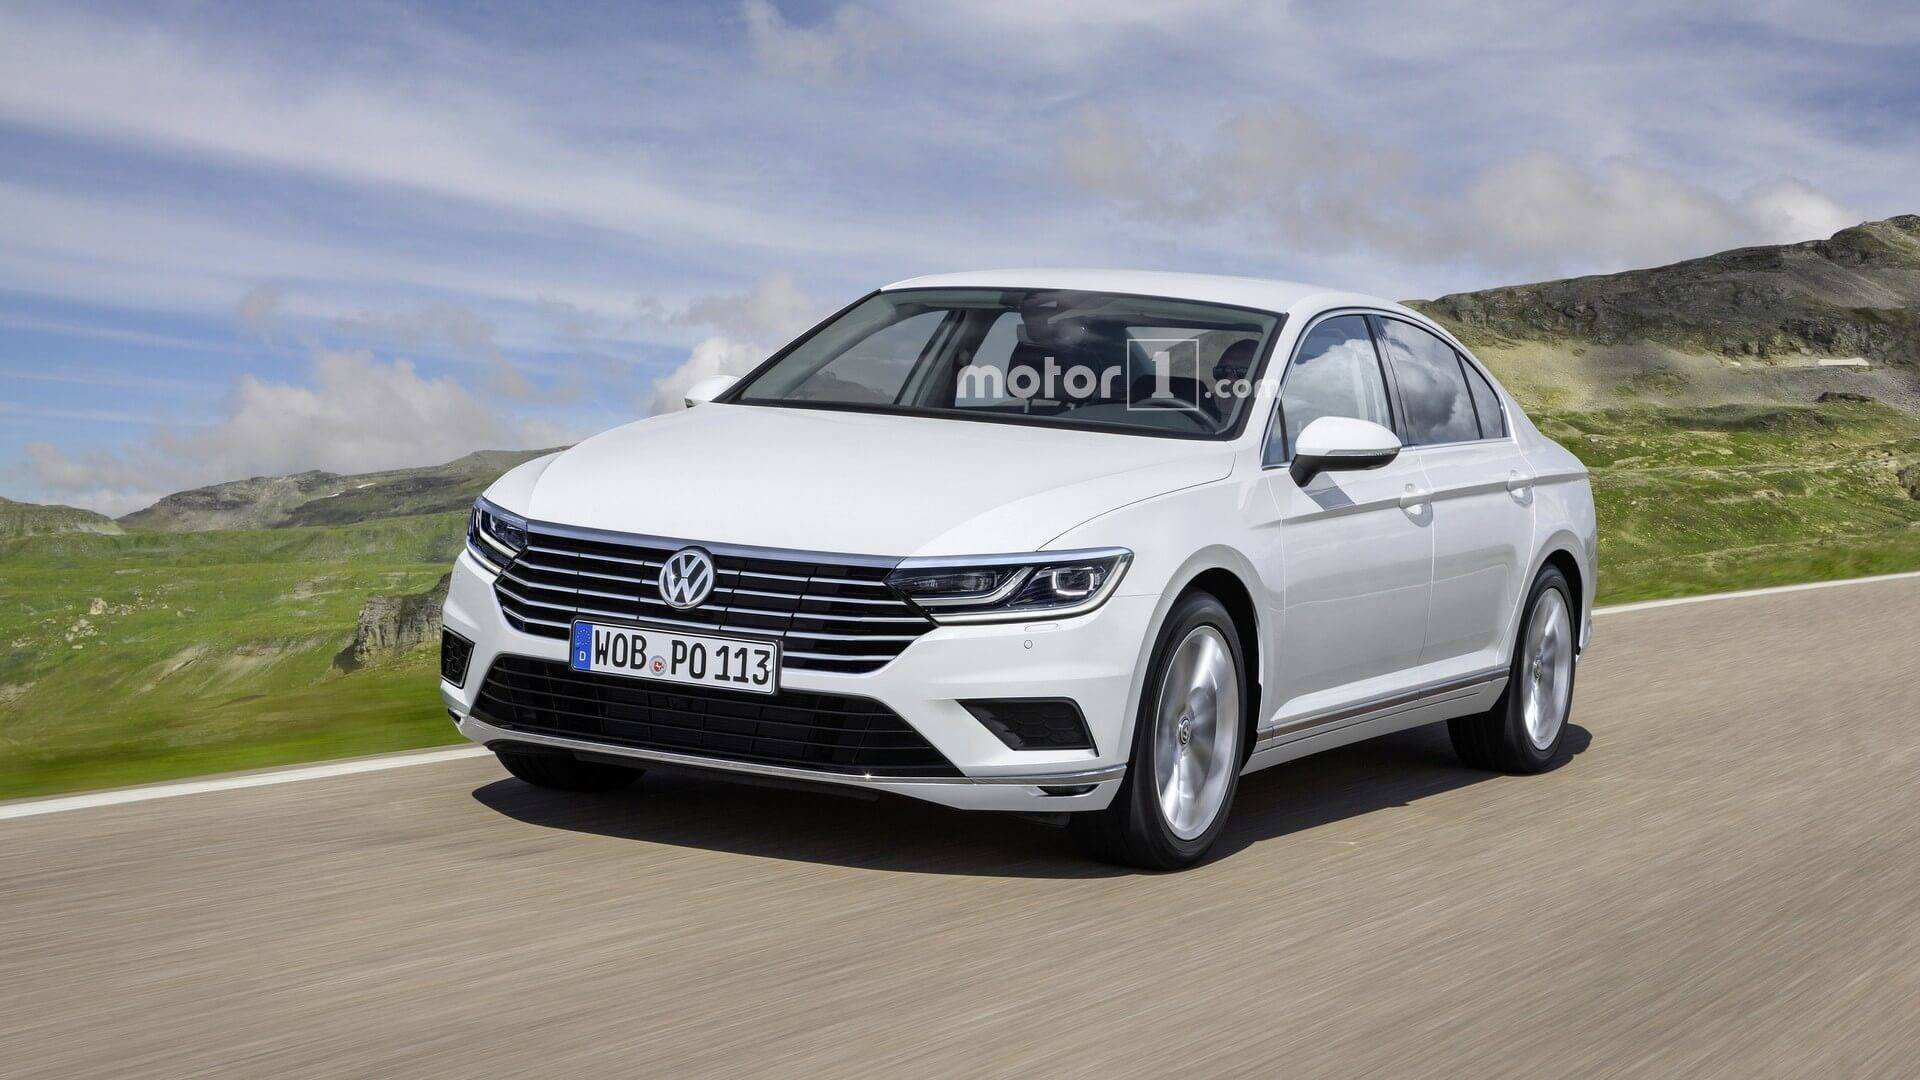 37 Great Next Generation 2020 Vw Cc Specs for Next Generation 2020 Vw Cc